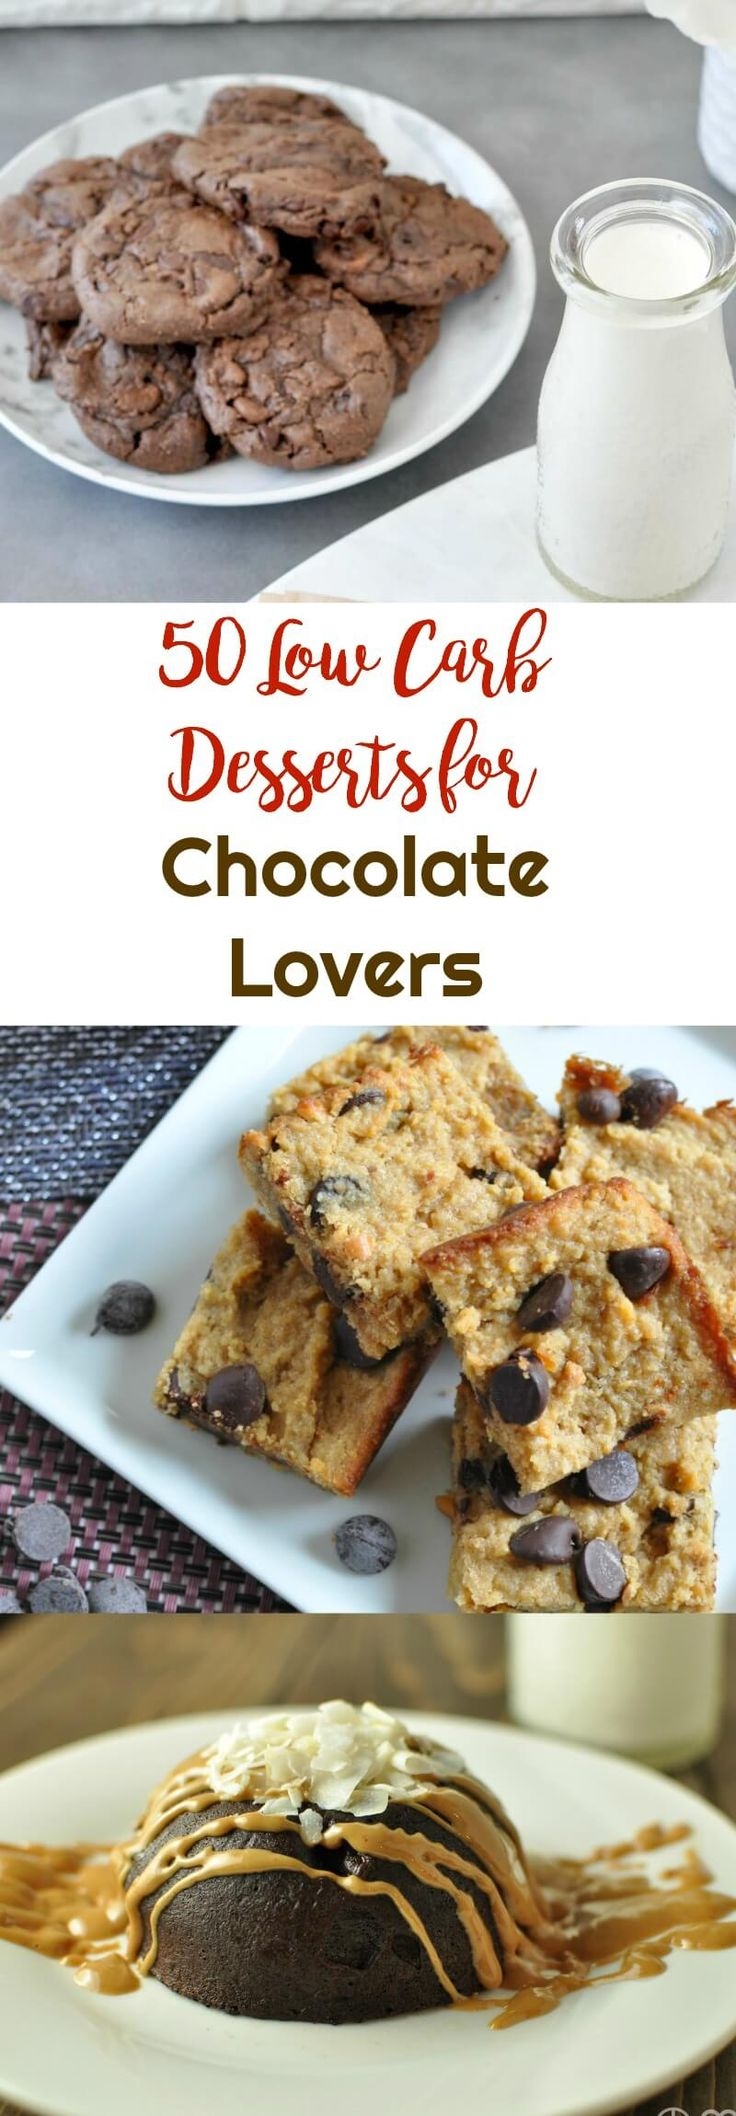 50 Low Carb Desserts for Chocolate Lovers | Peace Love and Low Carb via @peaceloveandlocarb